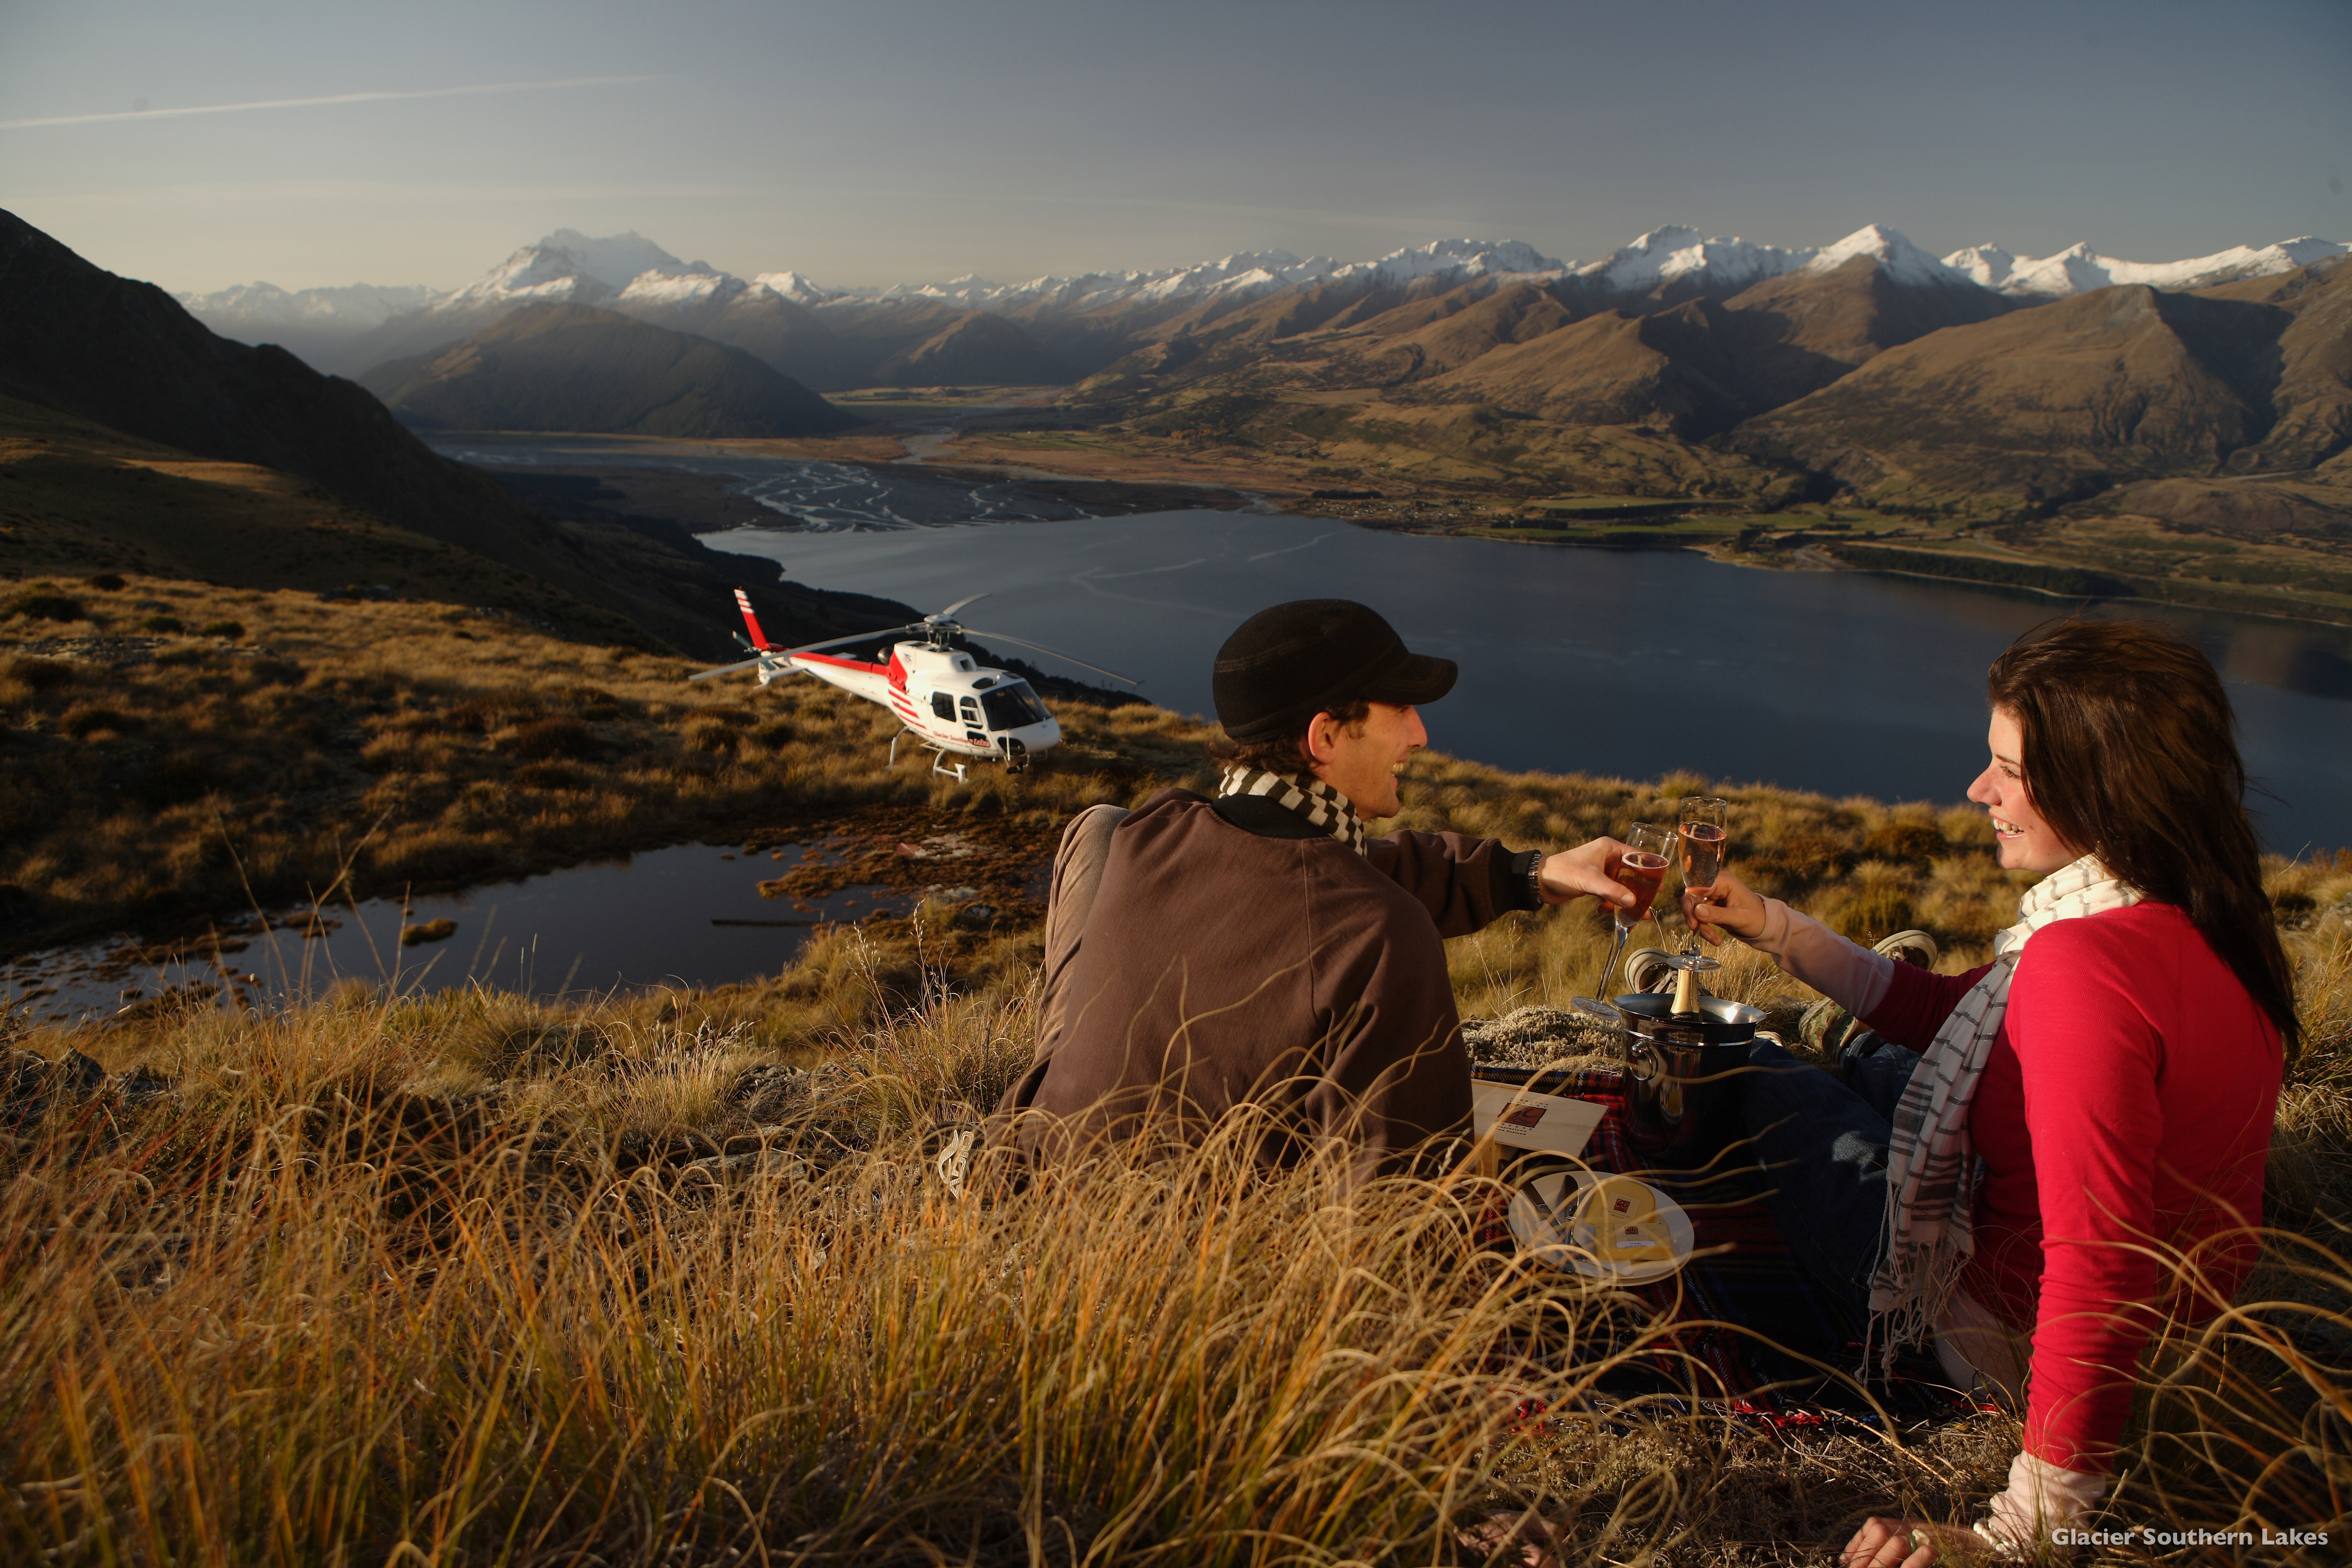 Queenstown Glacier Southern Lakes Helicopters